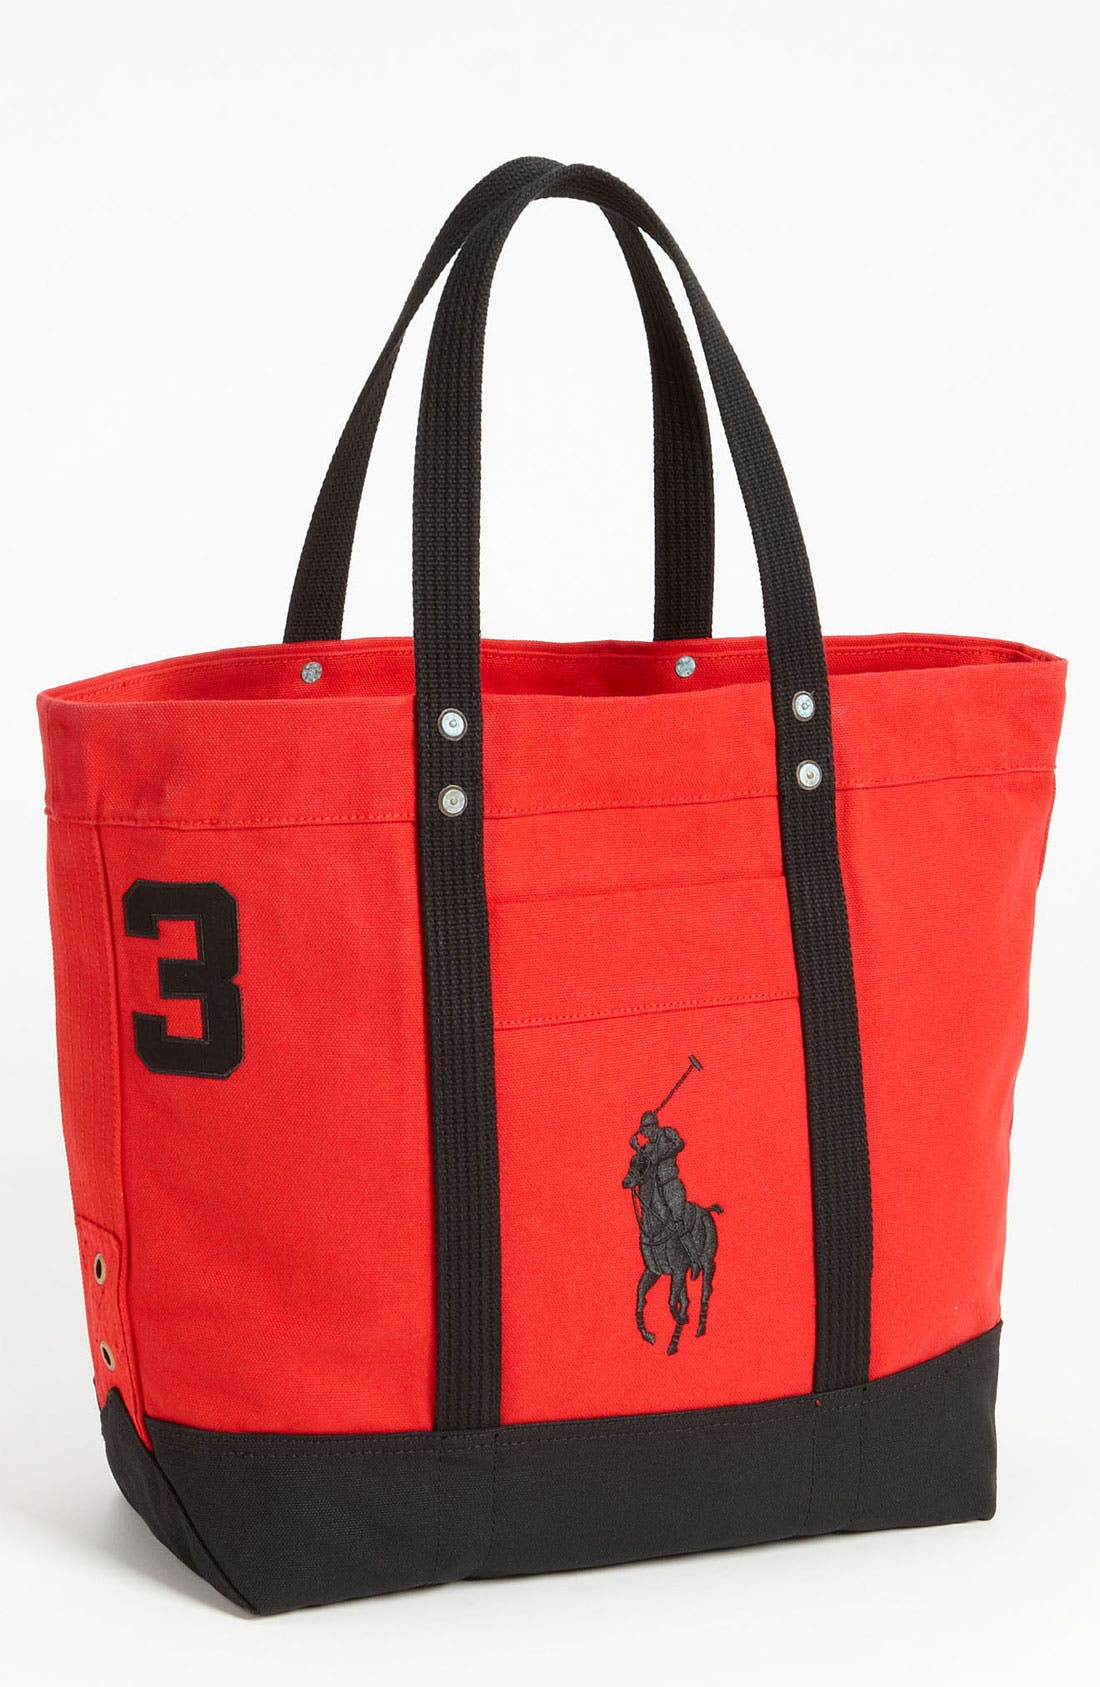 Main Image - Polo Ralph Lauren Tote Bag